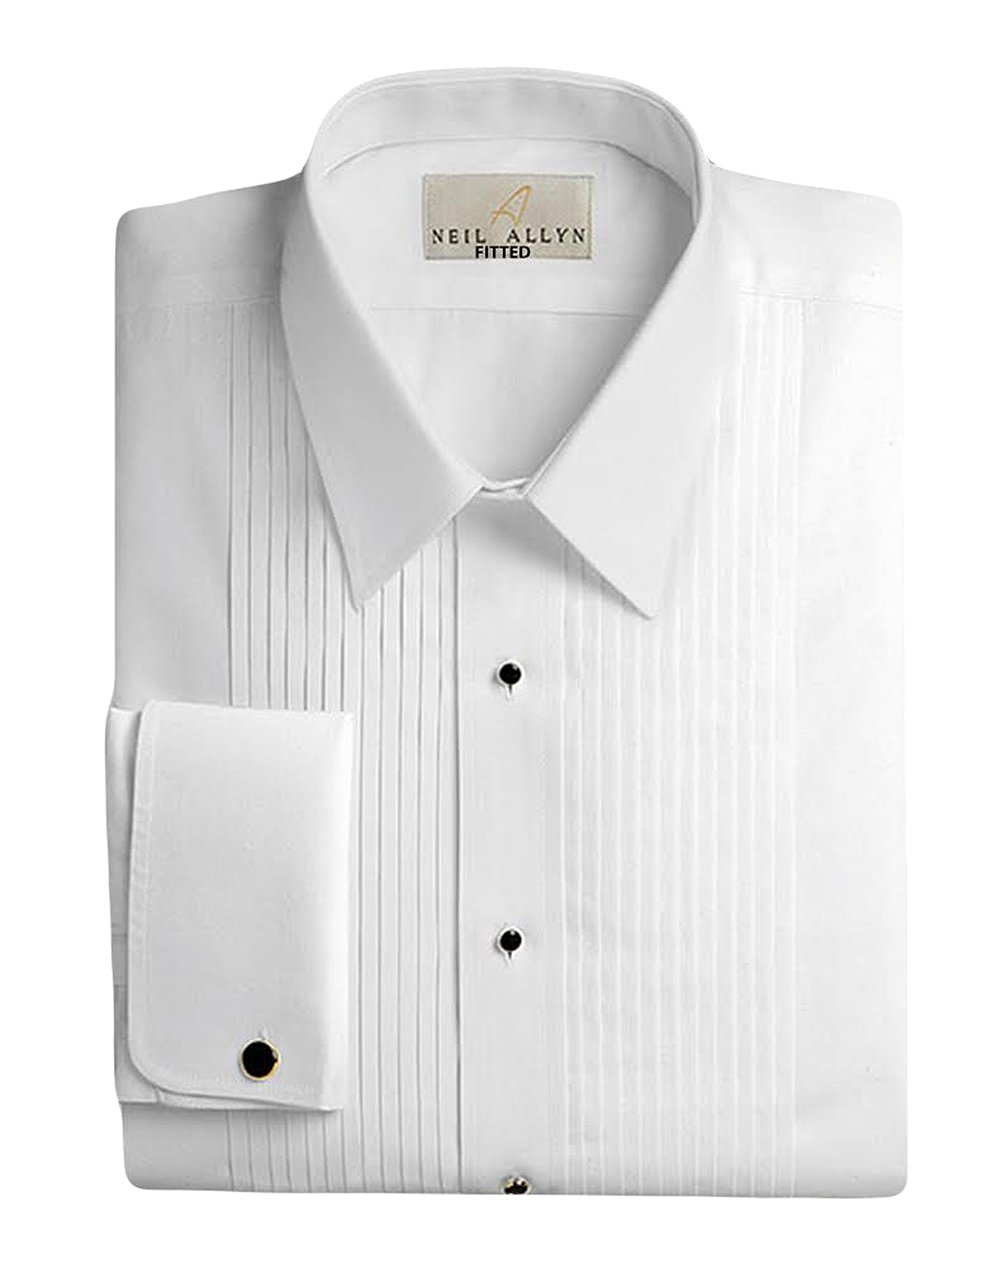 Neil Allyn Men's 100% Cotton Tuxedo Shirt, Slim Fit, 17 (36/37) by Neil Allyn